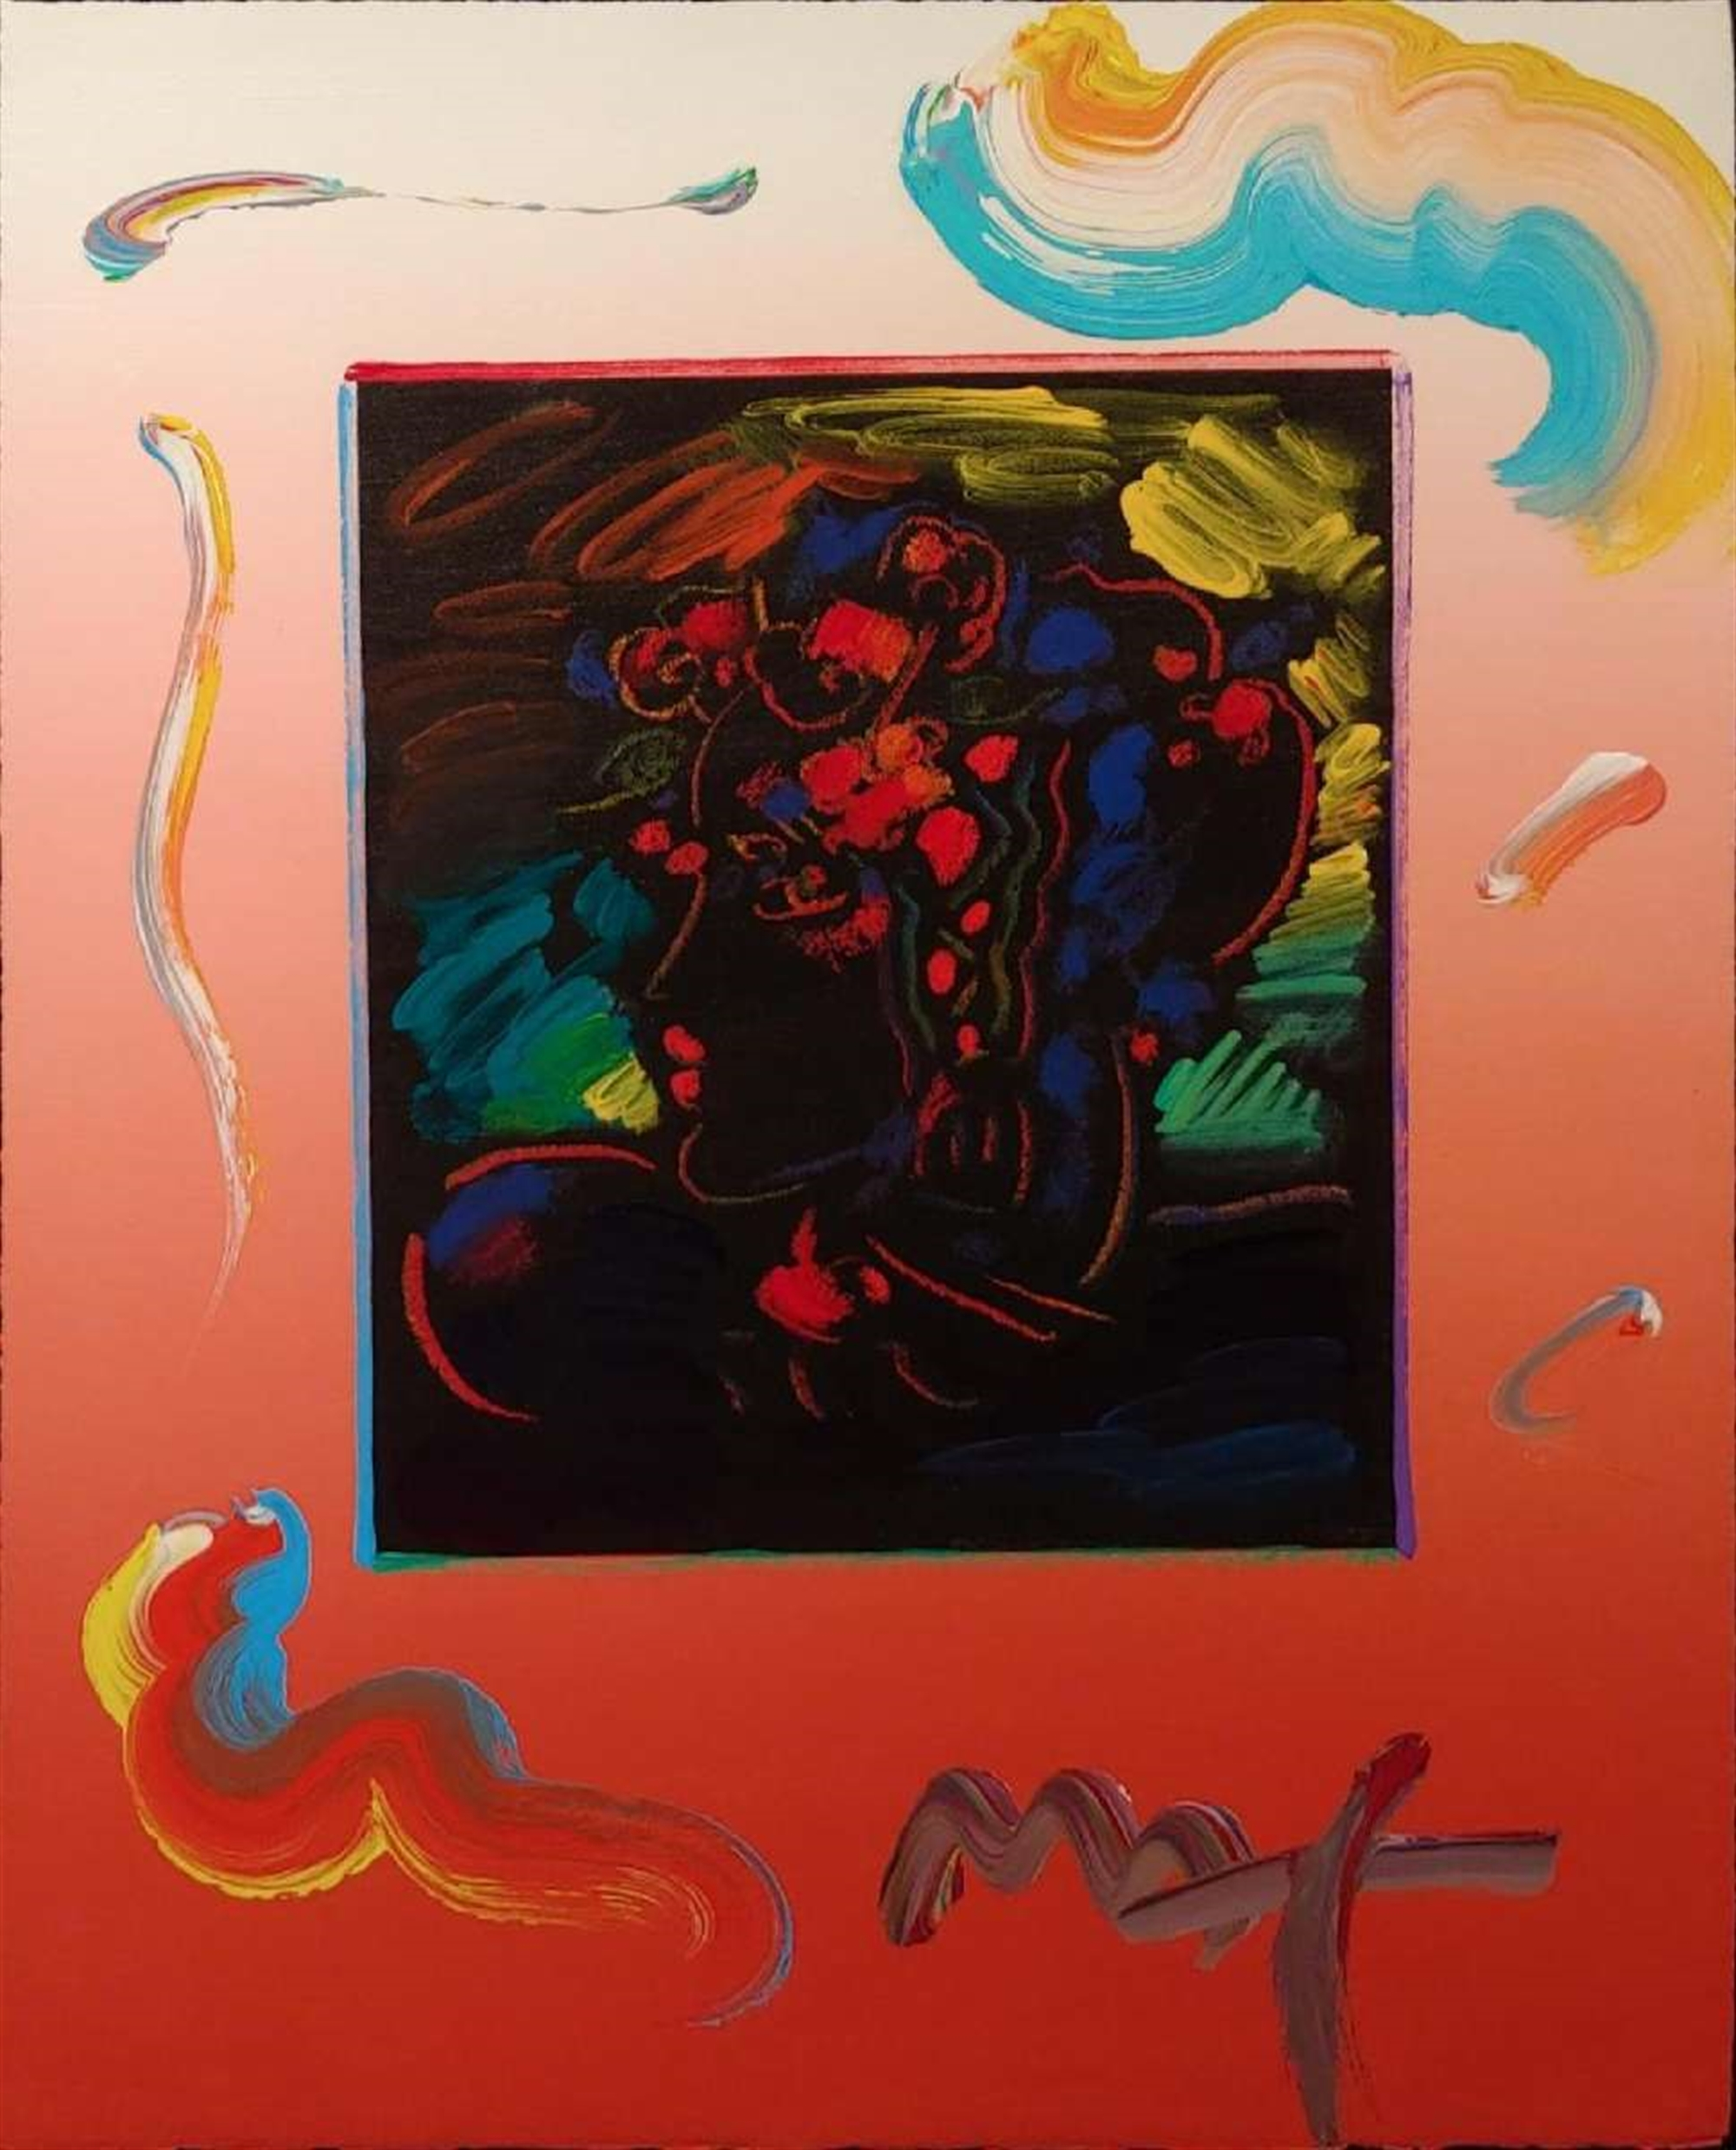 ROMANCE SUITE: PROFILE by Peter Max